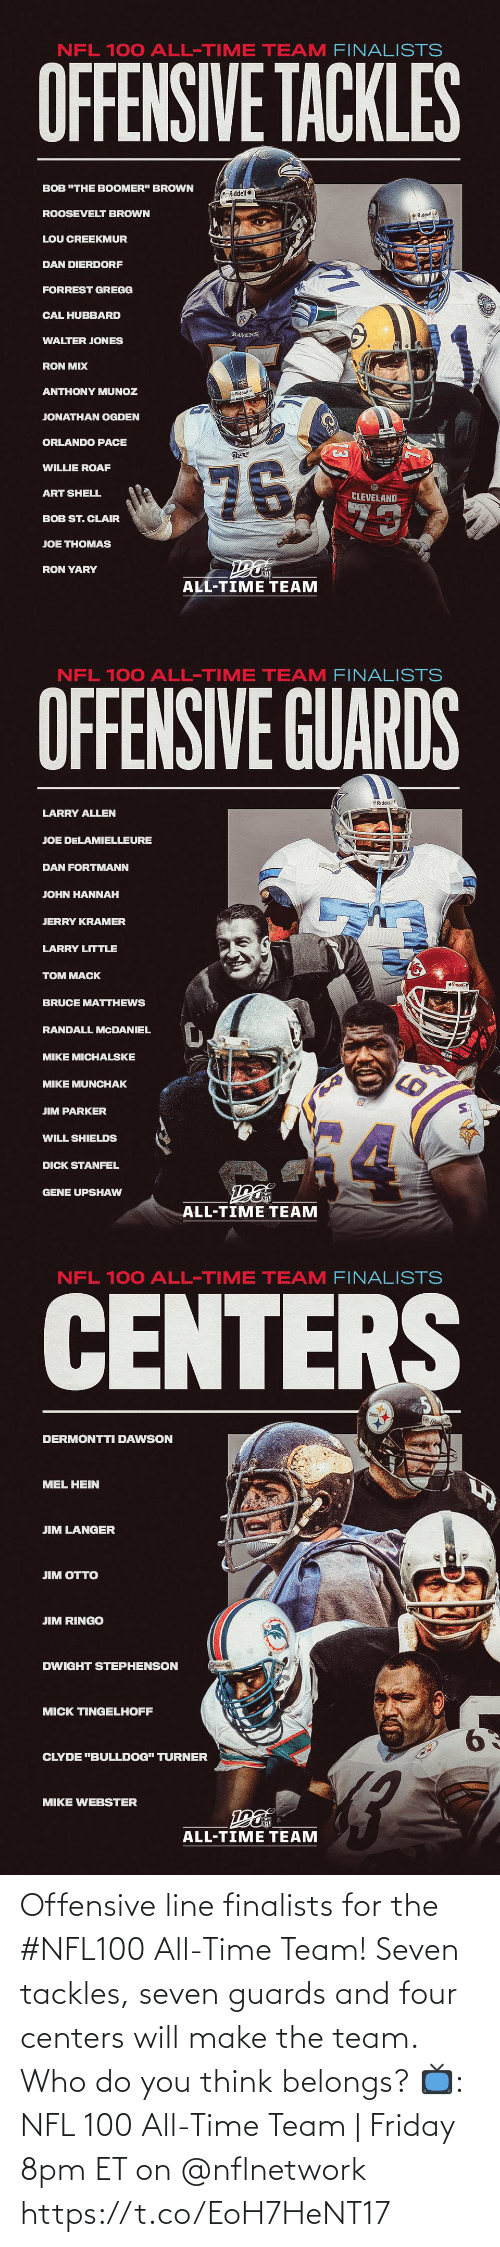 "kramer: NFL 100 ALL-TIME TEAM FINALISTS  OFFENSIVE TACKLES  BOB ""THE BOOMER"" BROWN  Riddel  ROOSEVELT BROWN  O Riddell  LOU CREEKMUR  DAN DIERDORF  FORREST GREGG  CAL HUBBARD  RAVENS  WALTER JONES  RON MIX  ANTHONY MUNOZ  Riddell  JONATHAN OGDEN  ORLANDO PACE  Rams  76  WILLIE ROAF  ART SHELL  CLEVELAND  73  BOB ST. CLAIR  JOE THOMAS  RON YARY  ALL-TIME TEAM   NFL 100 ALL-TIME TEAM FINALISTS  OFFENSIVE GUARDS  Riddel  LARRY ALLEN  JOE DELAMIELLEURE  DAN FORTMANN  JOHN HANNAH  JERRY KRAMER  LARRY LITTLE  TOM MACK  BRUCE MATTHEWS  RANDALL MCDANIEL  MIKE MICHALSKE  MIKE MUNCHAK  JIM PARKER  WILL SHIELDS  DICK STANFEL  GENE UPSHAW  ALL-TIME TEAM   NFL 100 ALL-TIME TEAM FINALISTS  CENTERS  DERMONTTI DAWSON  MEL HEIN  JIM LANGER  ЛM OТTO  JIM RINGO  DWIGHT STEPHENSON  MICK TINGELHOFF  9.  CLYDE ""BULLDOG"" TURNER  MIKE WEBSTER  ALL-TIME TEAM Offensive line finalists for the #NFL100 All-Time Team!  Seven tackles, seven guards and four centers will make the team. Who do you think belongs?  📺: NFL 100 All-Time Team 